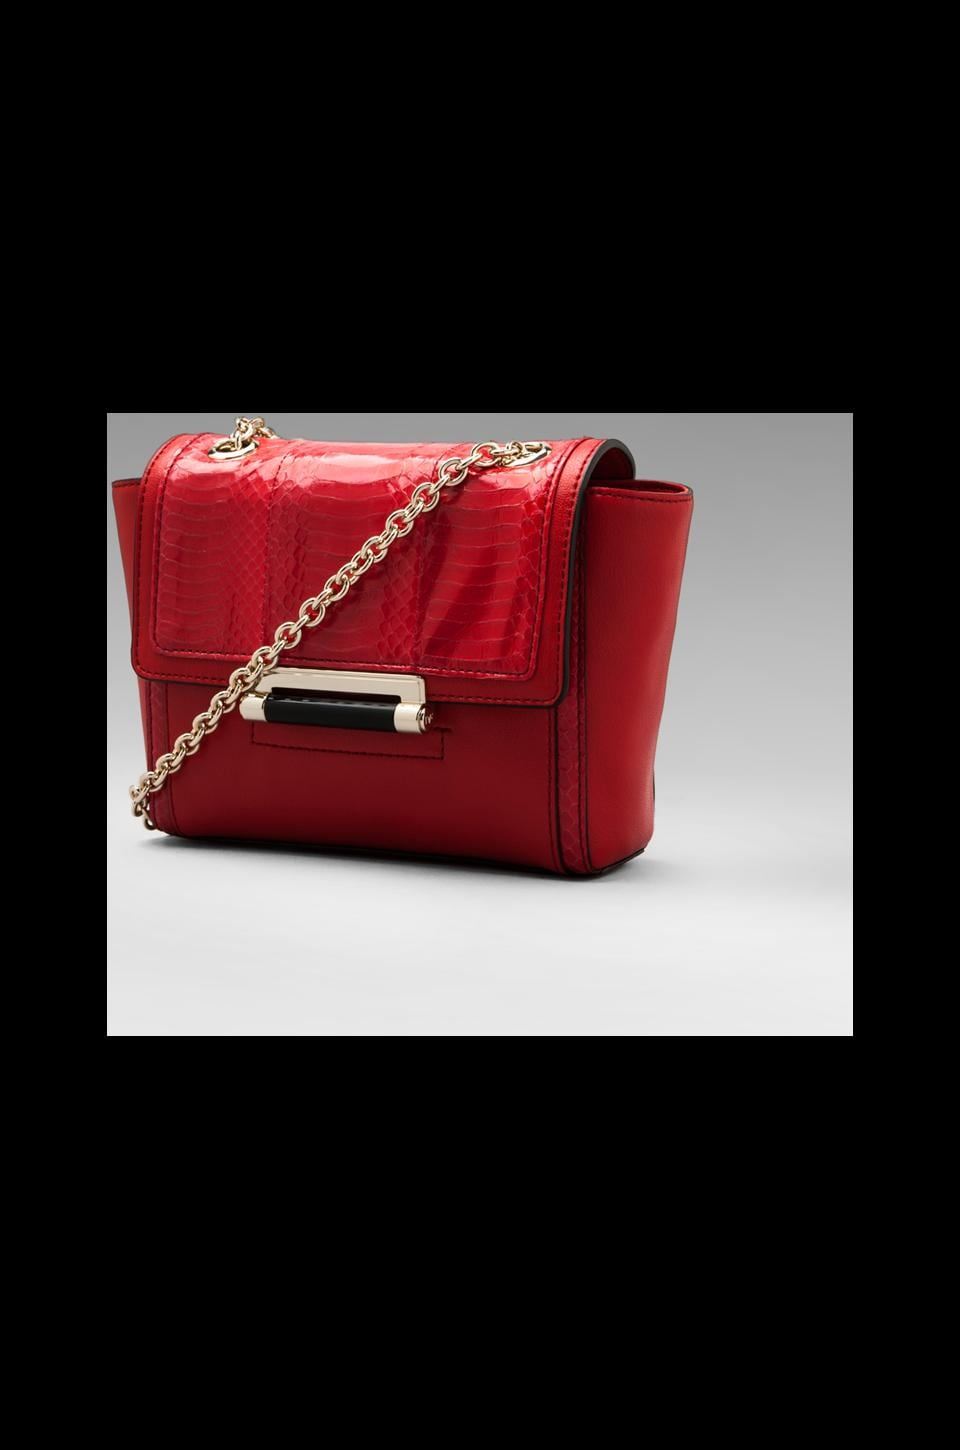 Diane von Furstenberg Mini Snake Combo Bag in Crimson